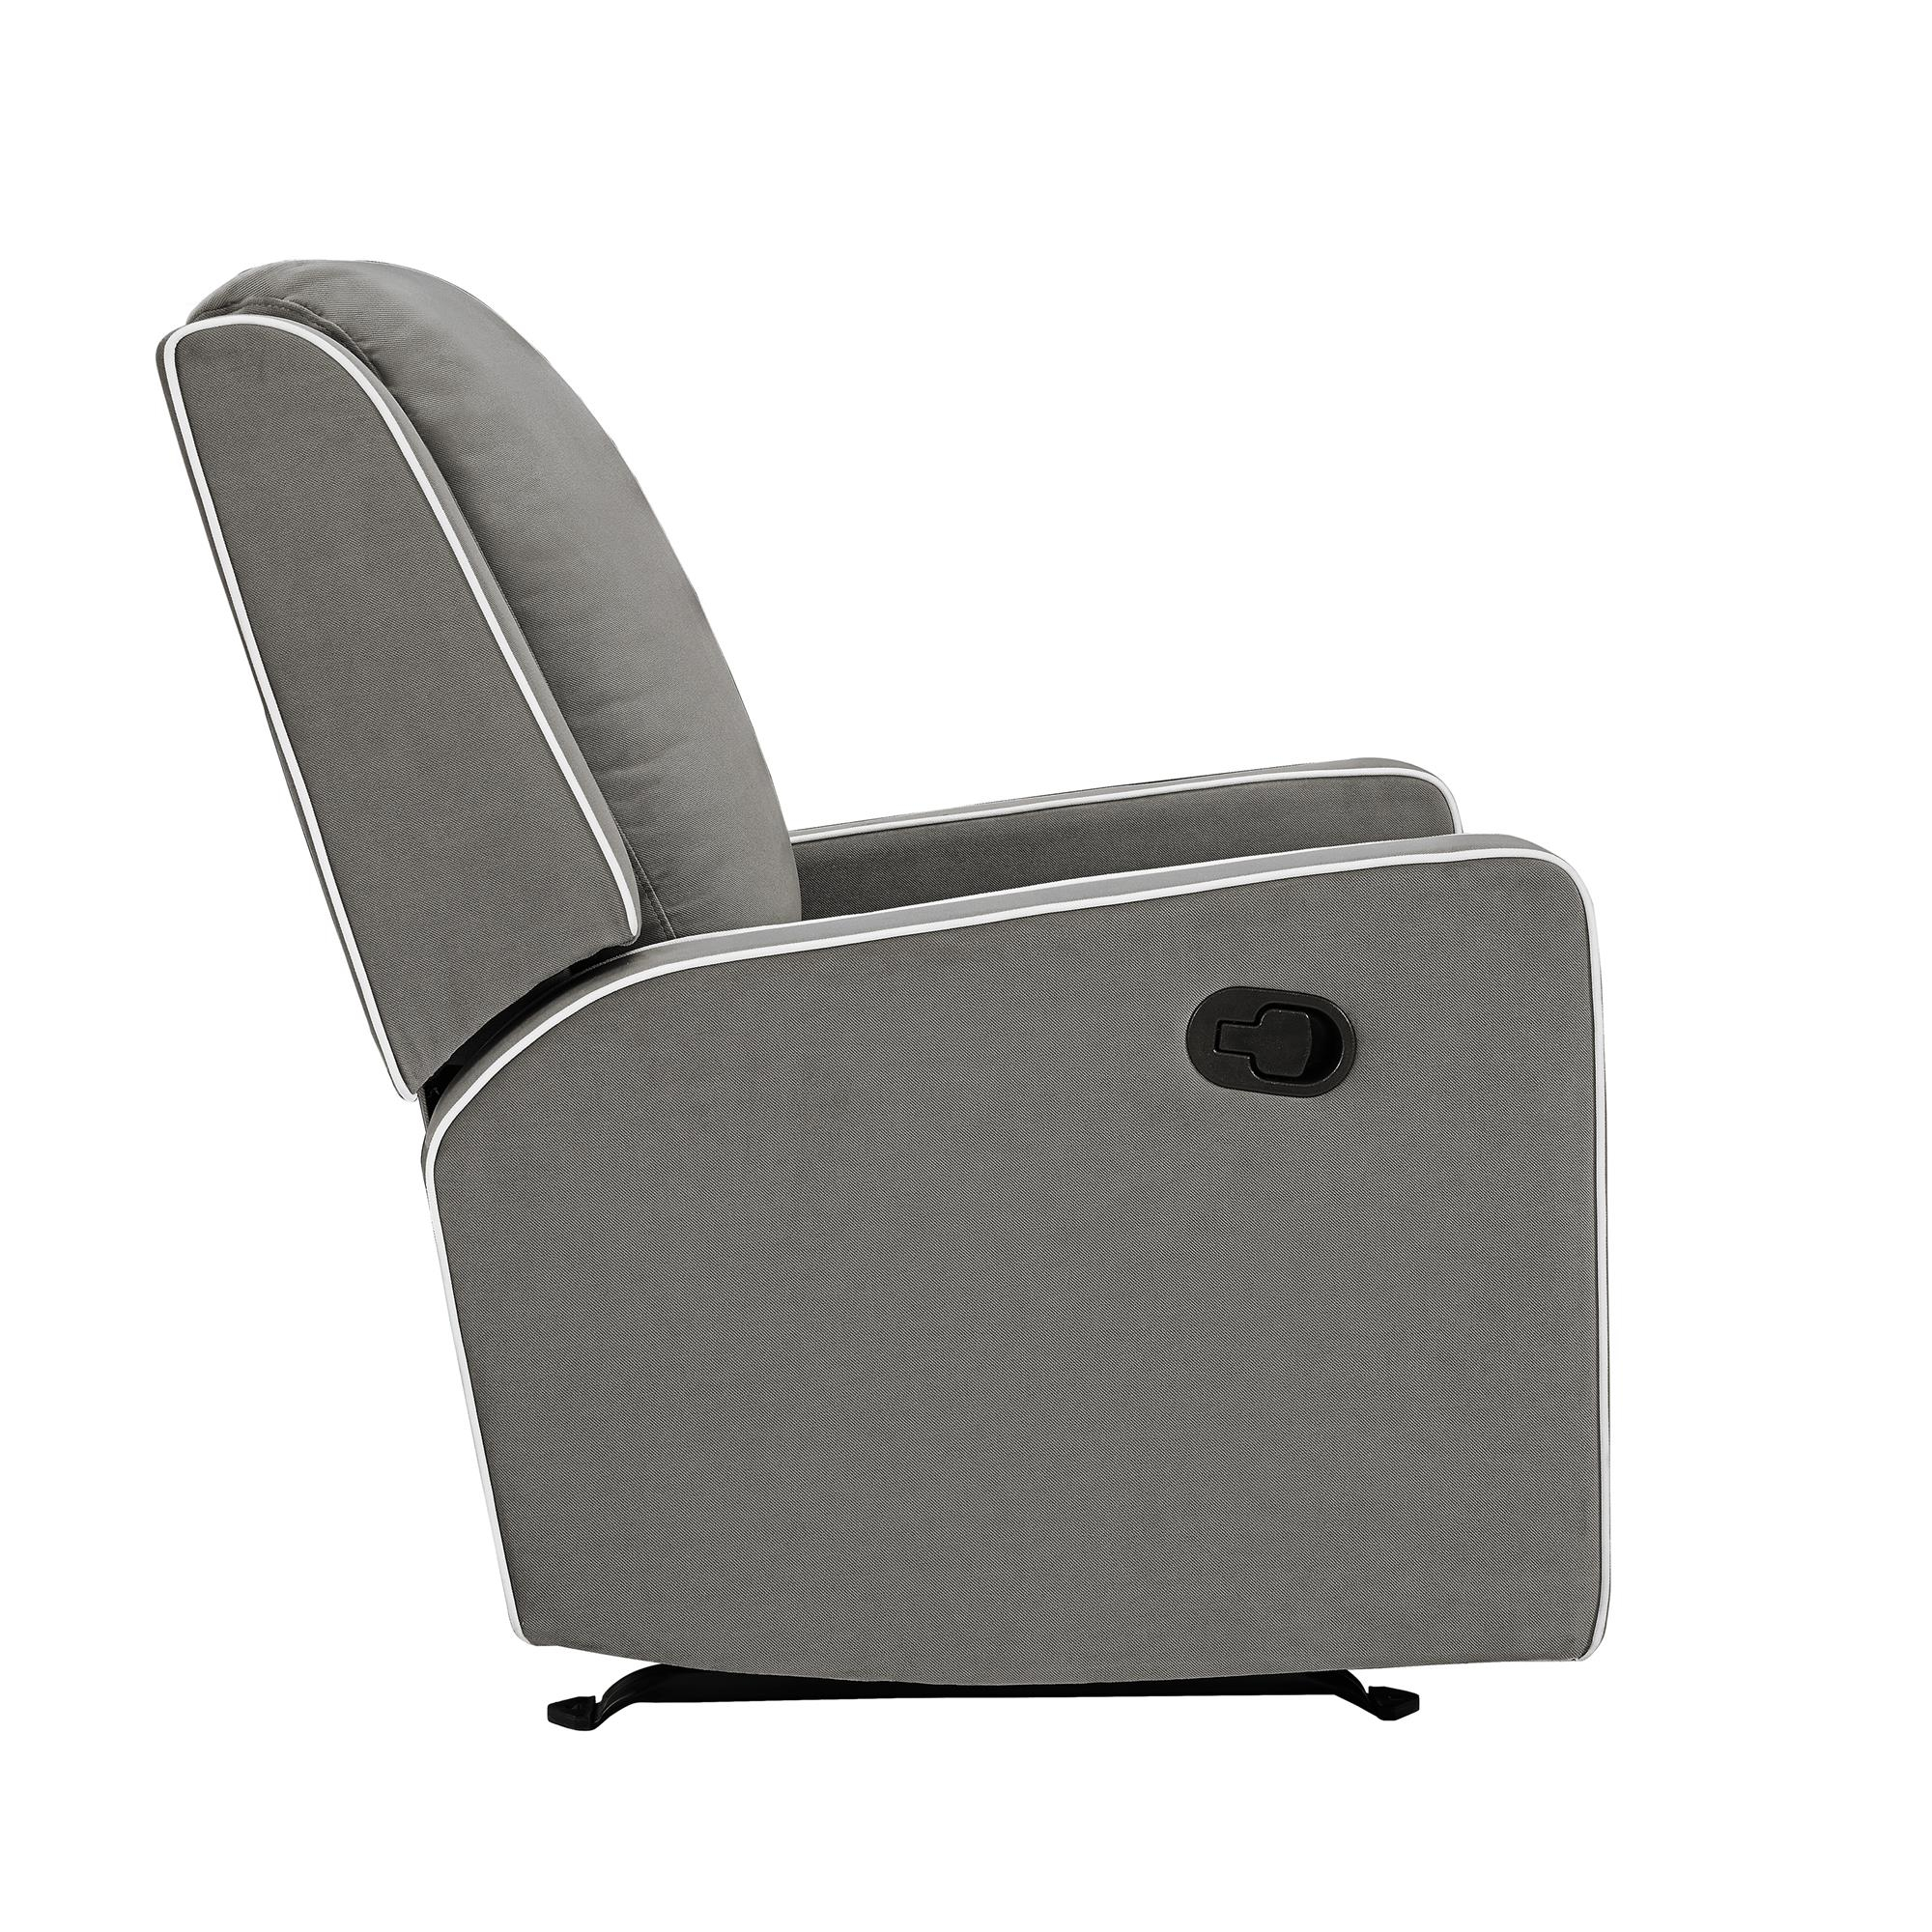 Baby Relax Robyn Rocking Recliner, Graphite Grey – Walmart With Regard To Abbey Swivel Glider Recliners (View 13 of 20)